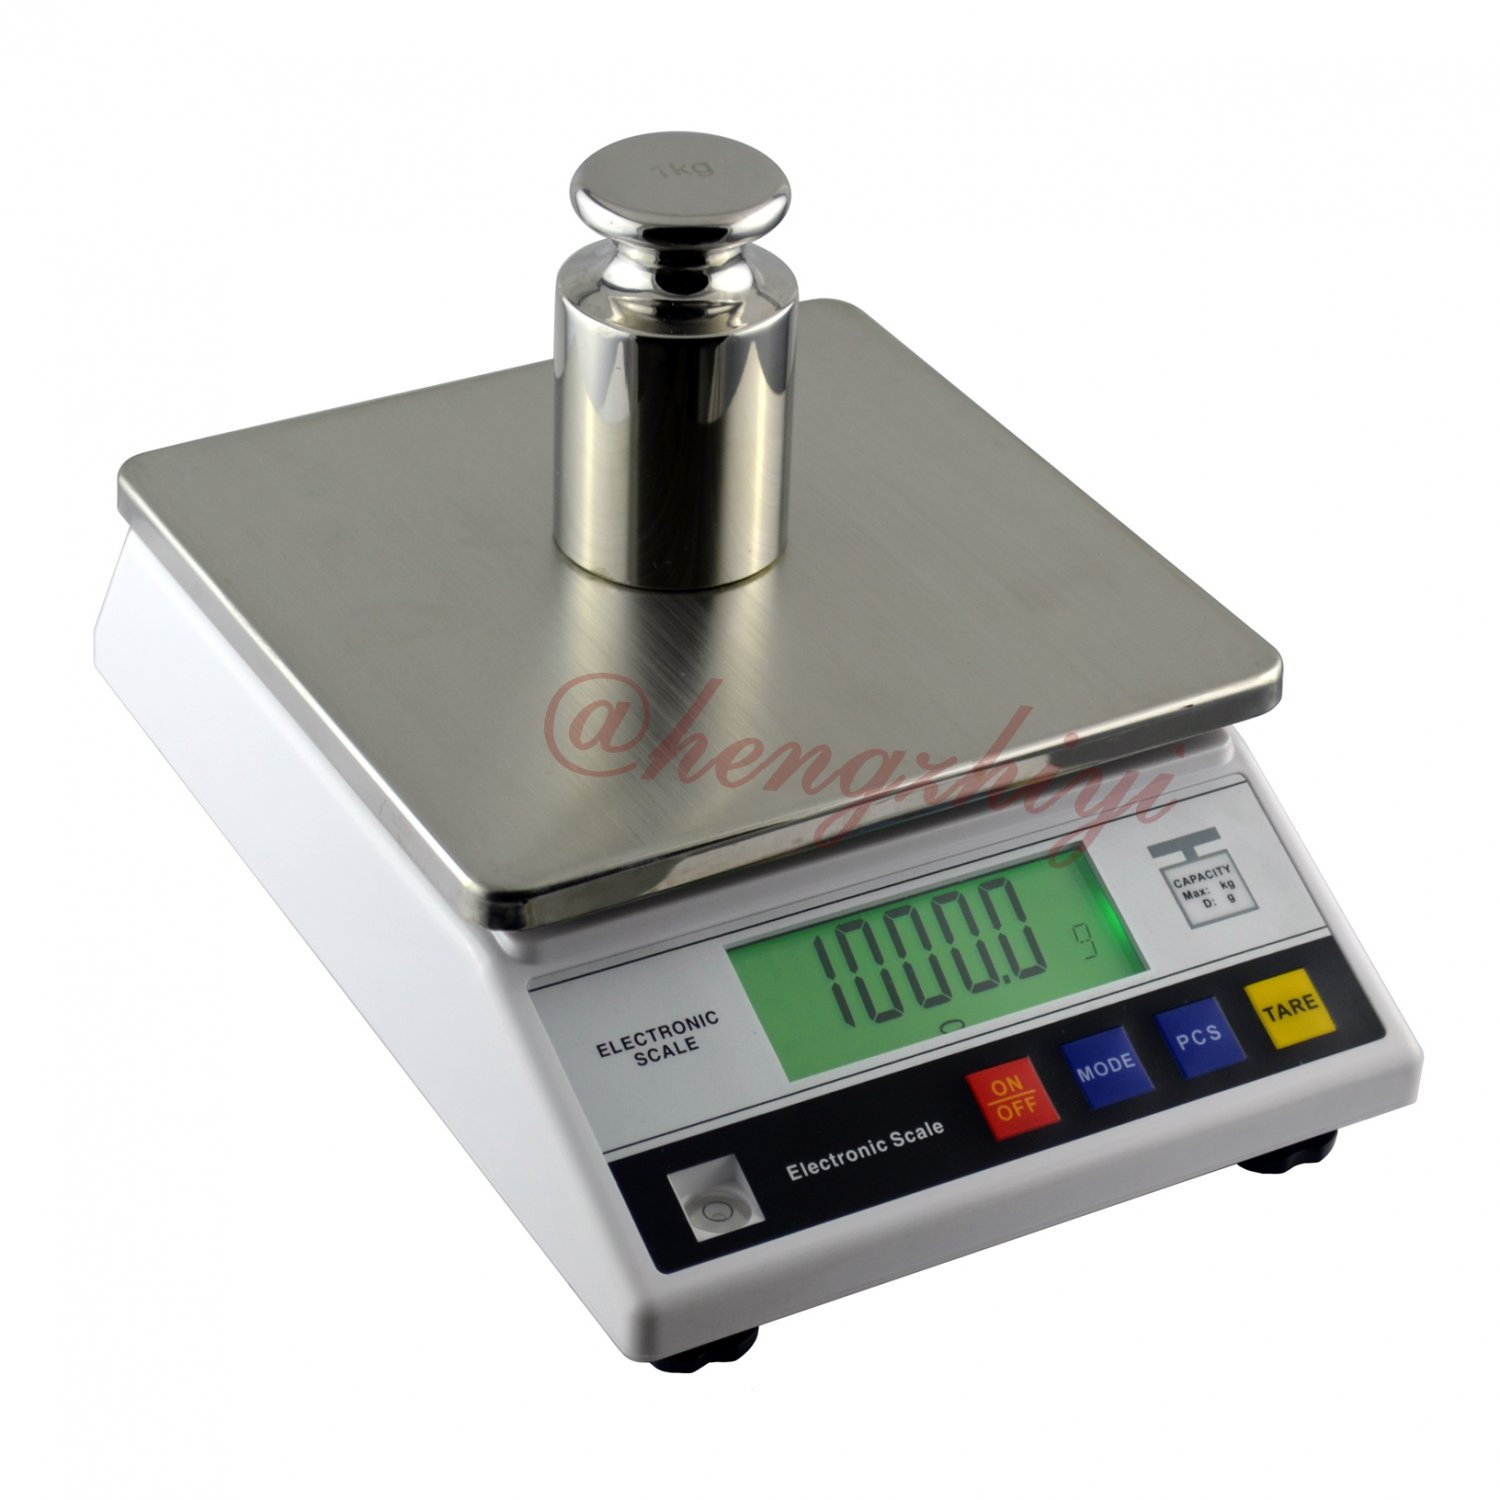 Weight Scales Big W 7 5kg X 1g Digital Precision Industrial Weighing Scale